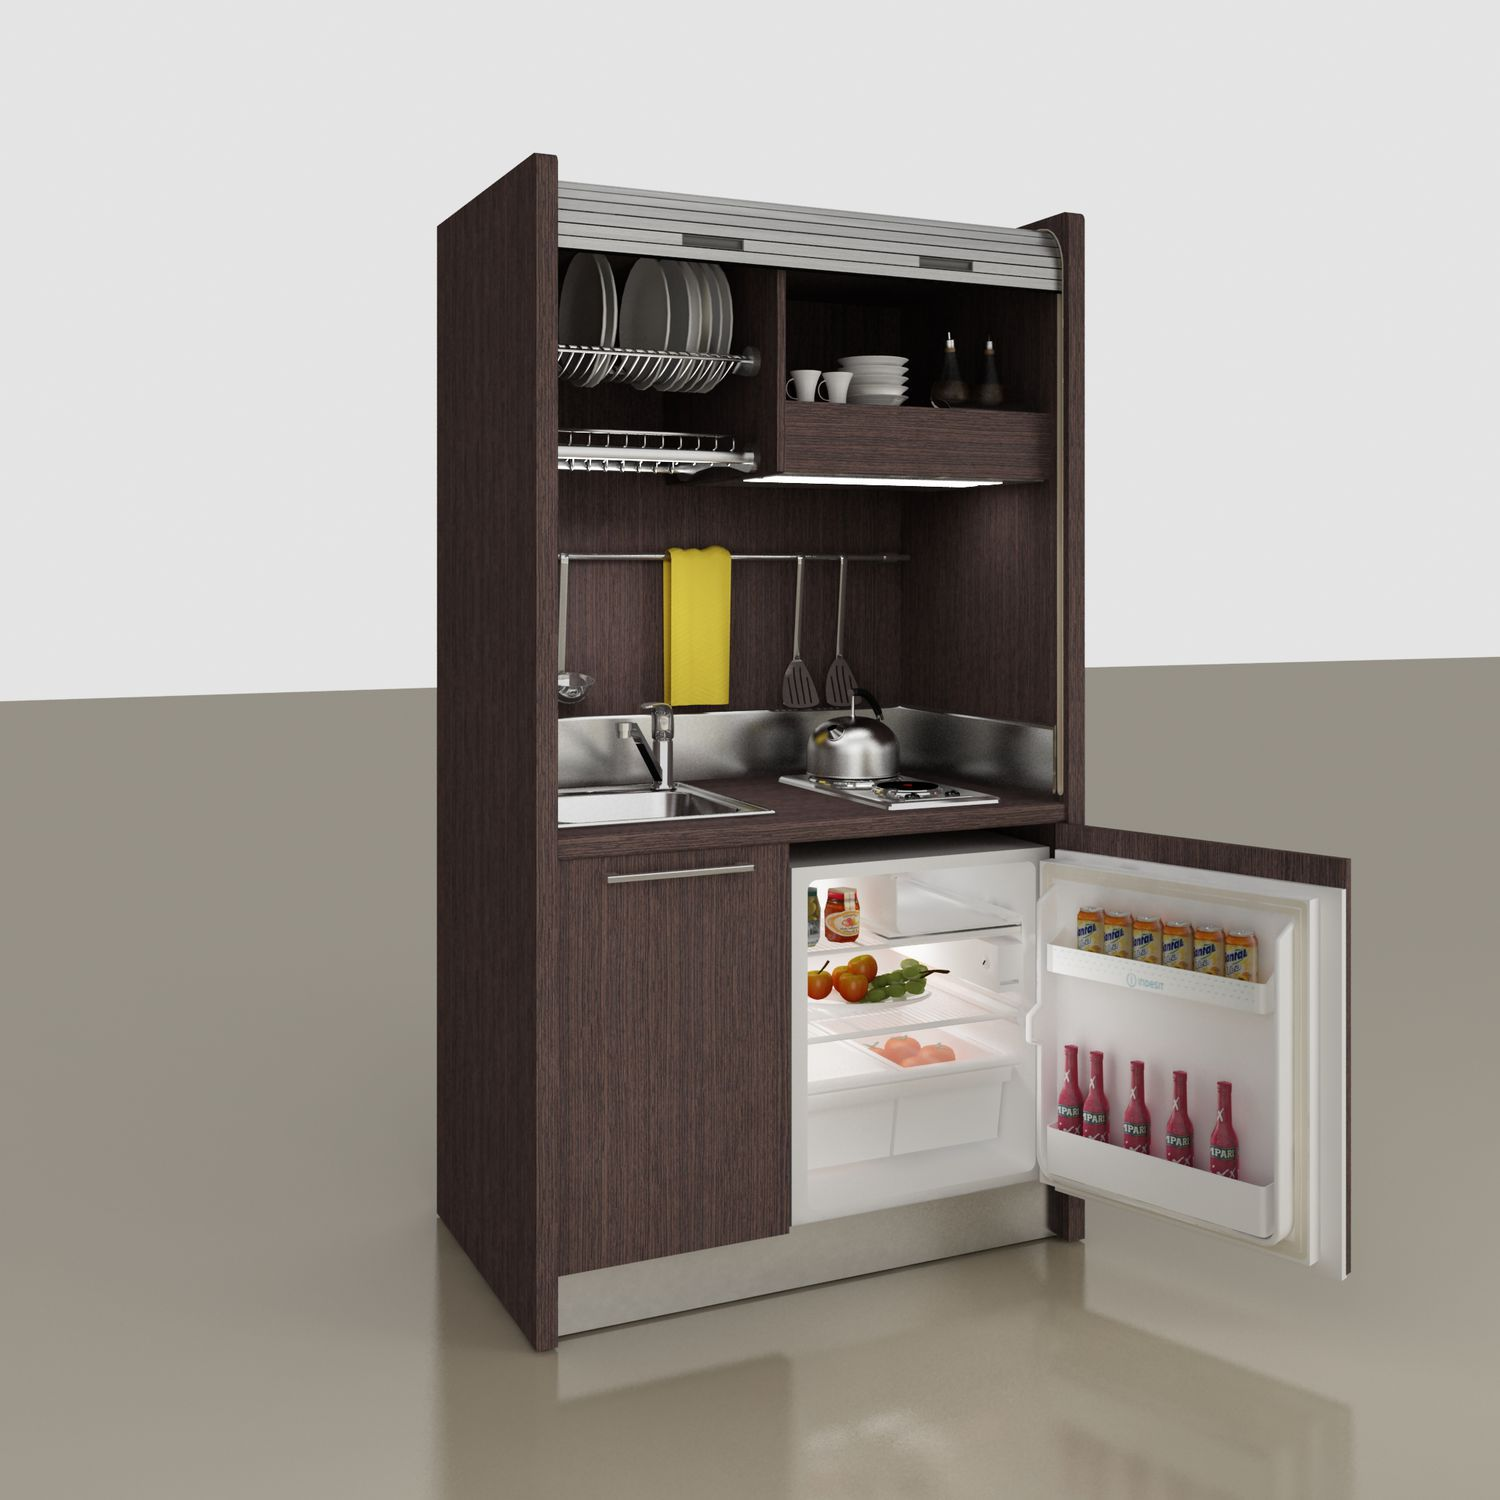 Mini Kitchen Wooden Commercial Kitchen Compact For Offices For Hotel